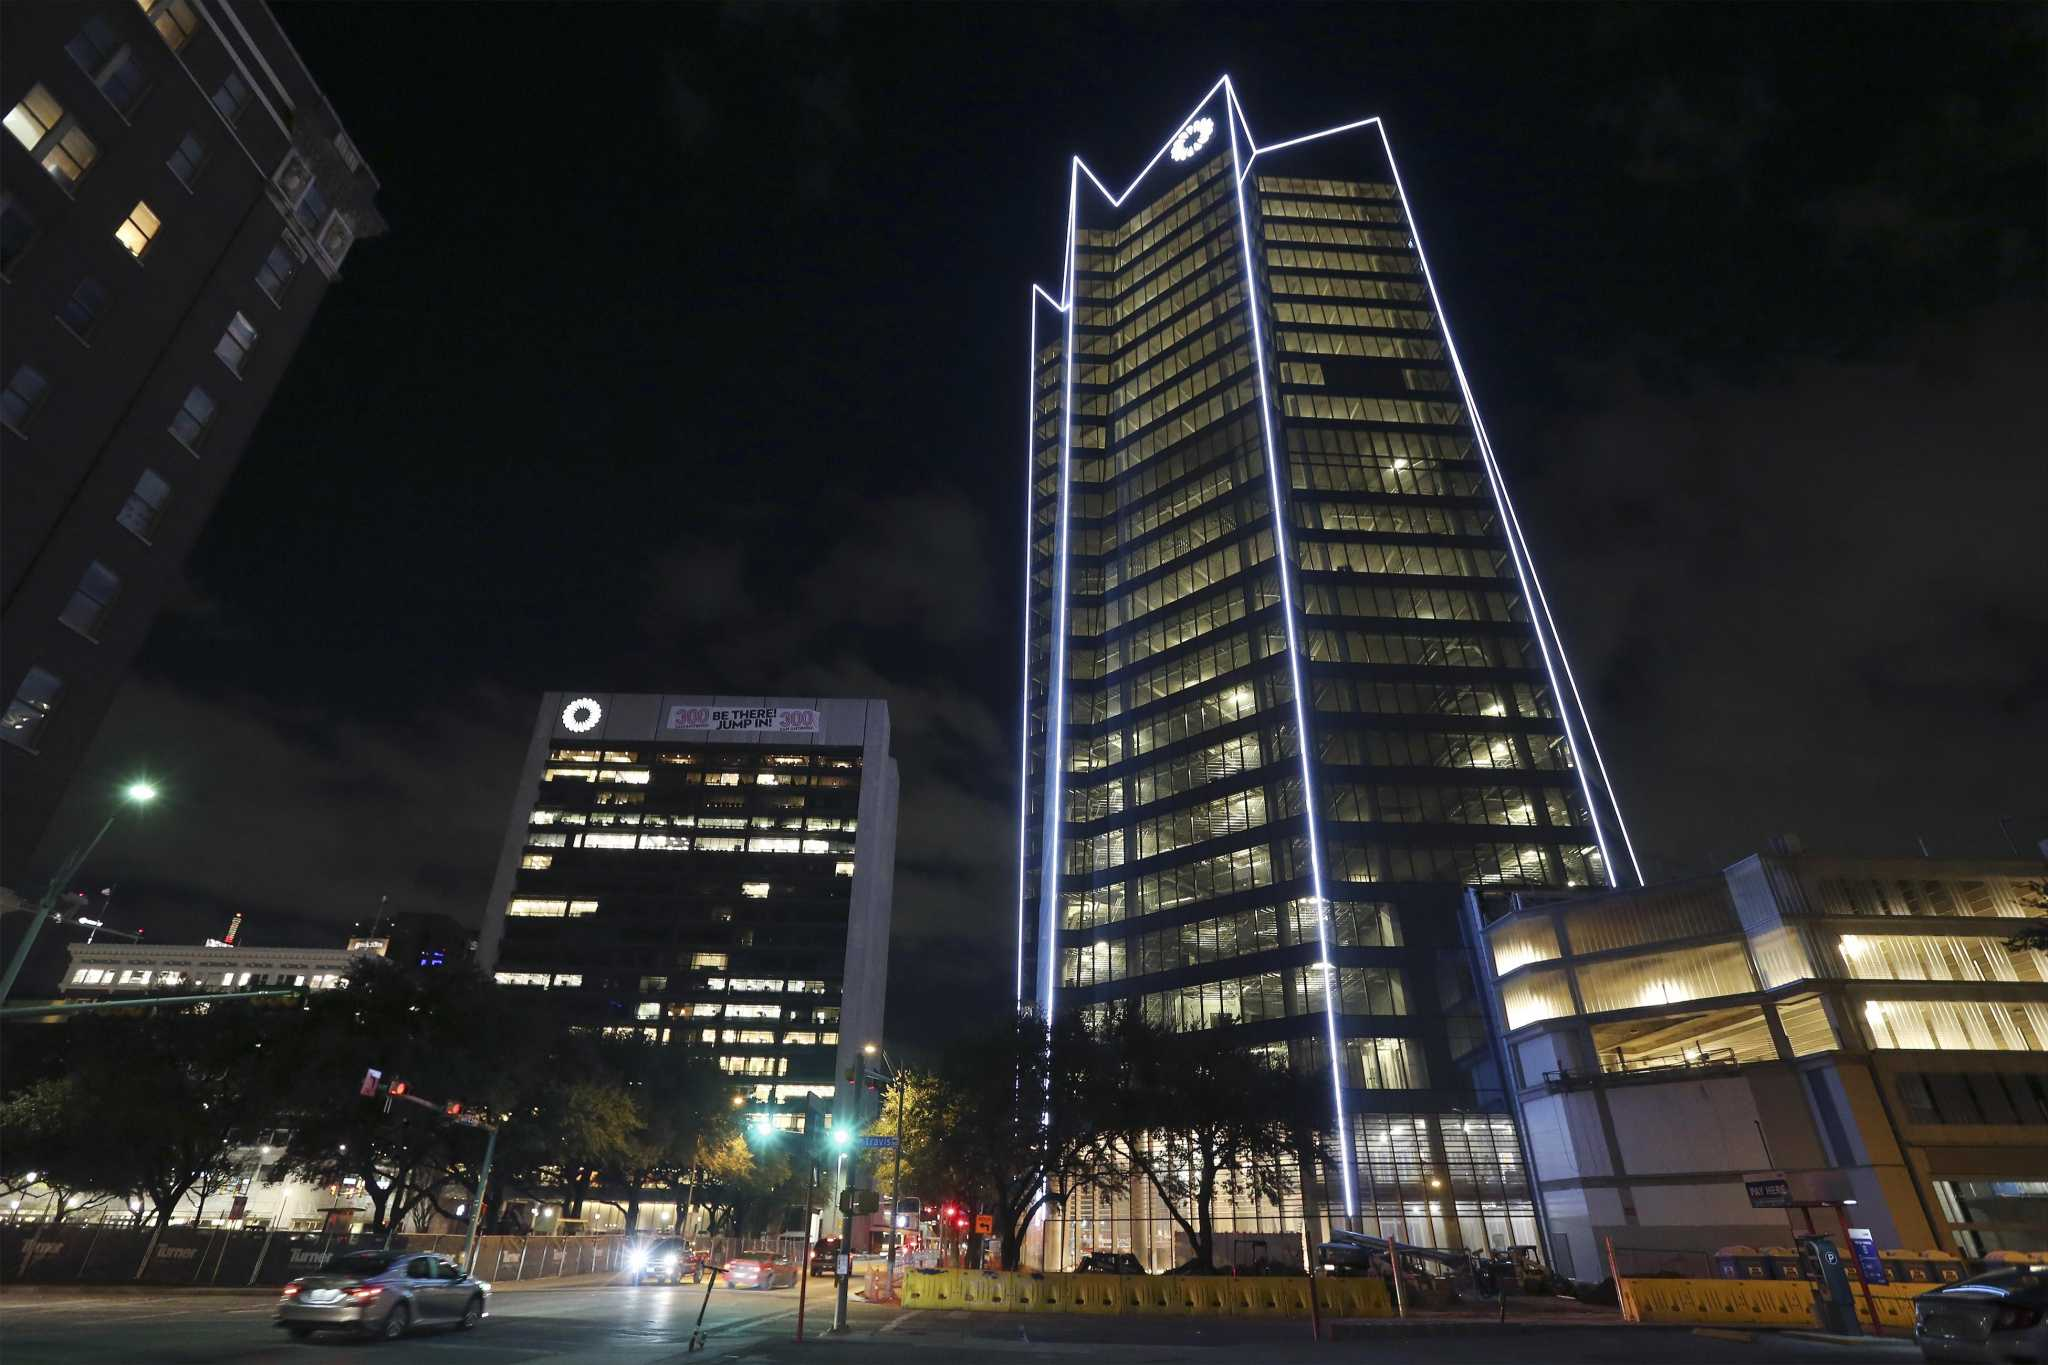 San Antonio S New Frost Bank Tower Gets Likened To Drill